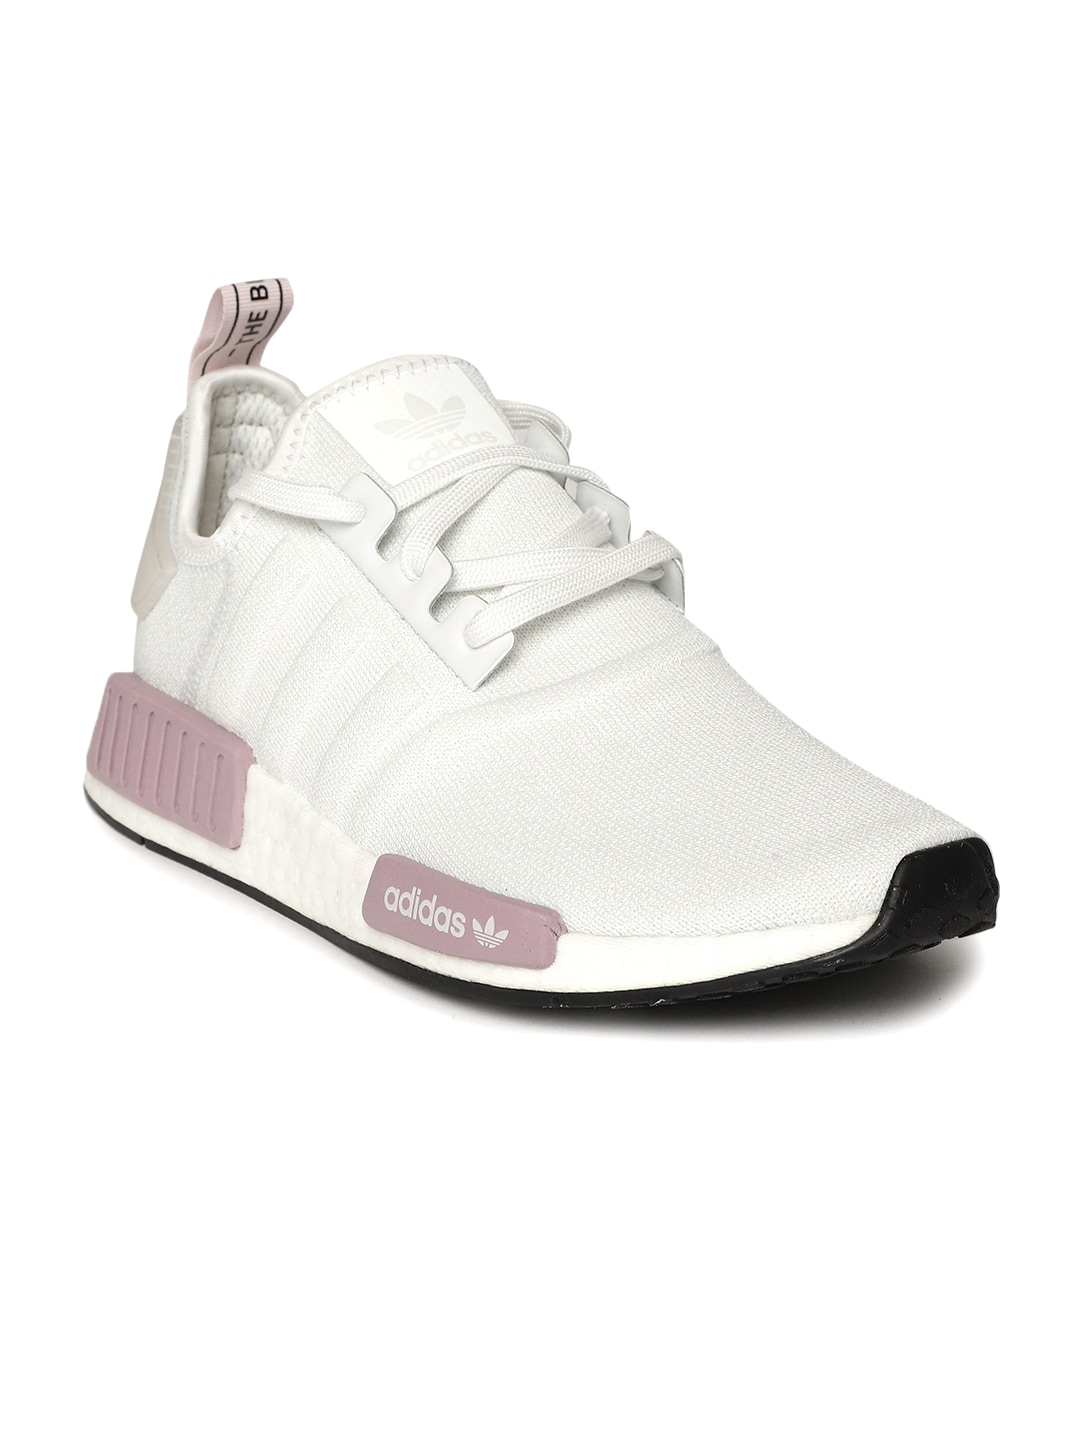 d7e3e6d4d0436 Women s Adidas Shoes - Buy Adidas Shoes for Women Online in India